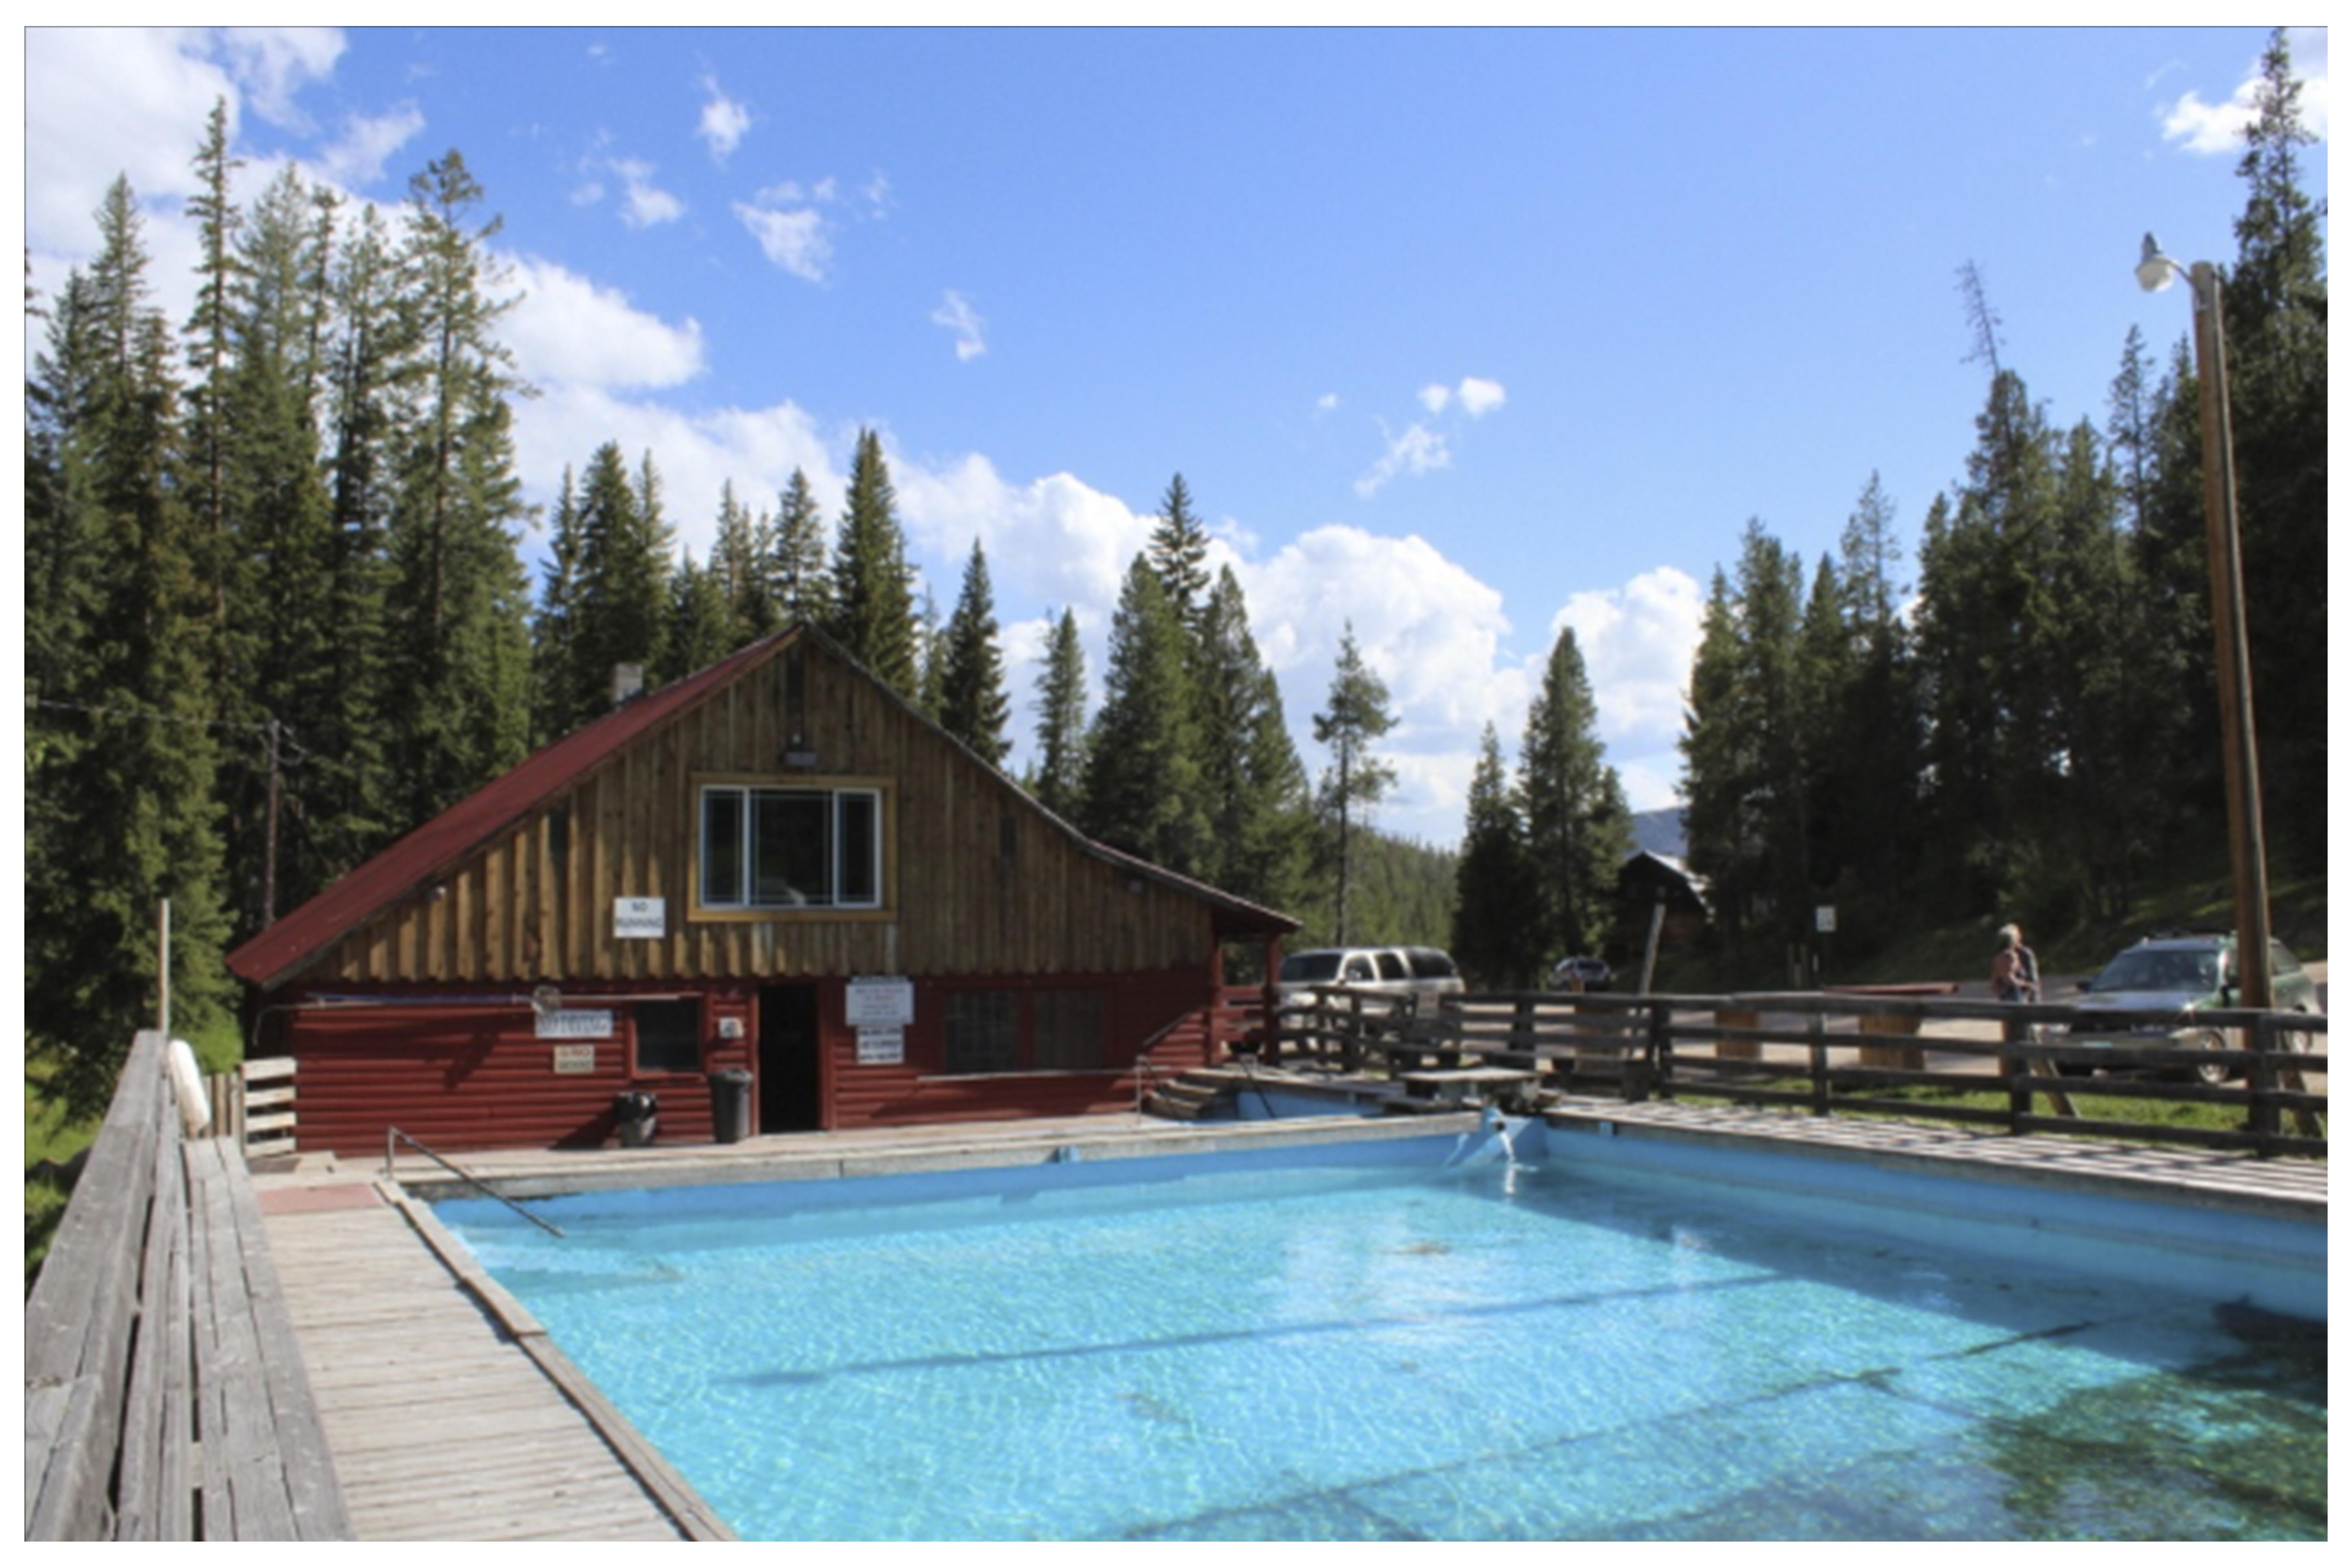 CVB_Hotsprings-2020-13_c